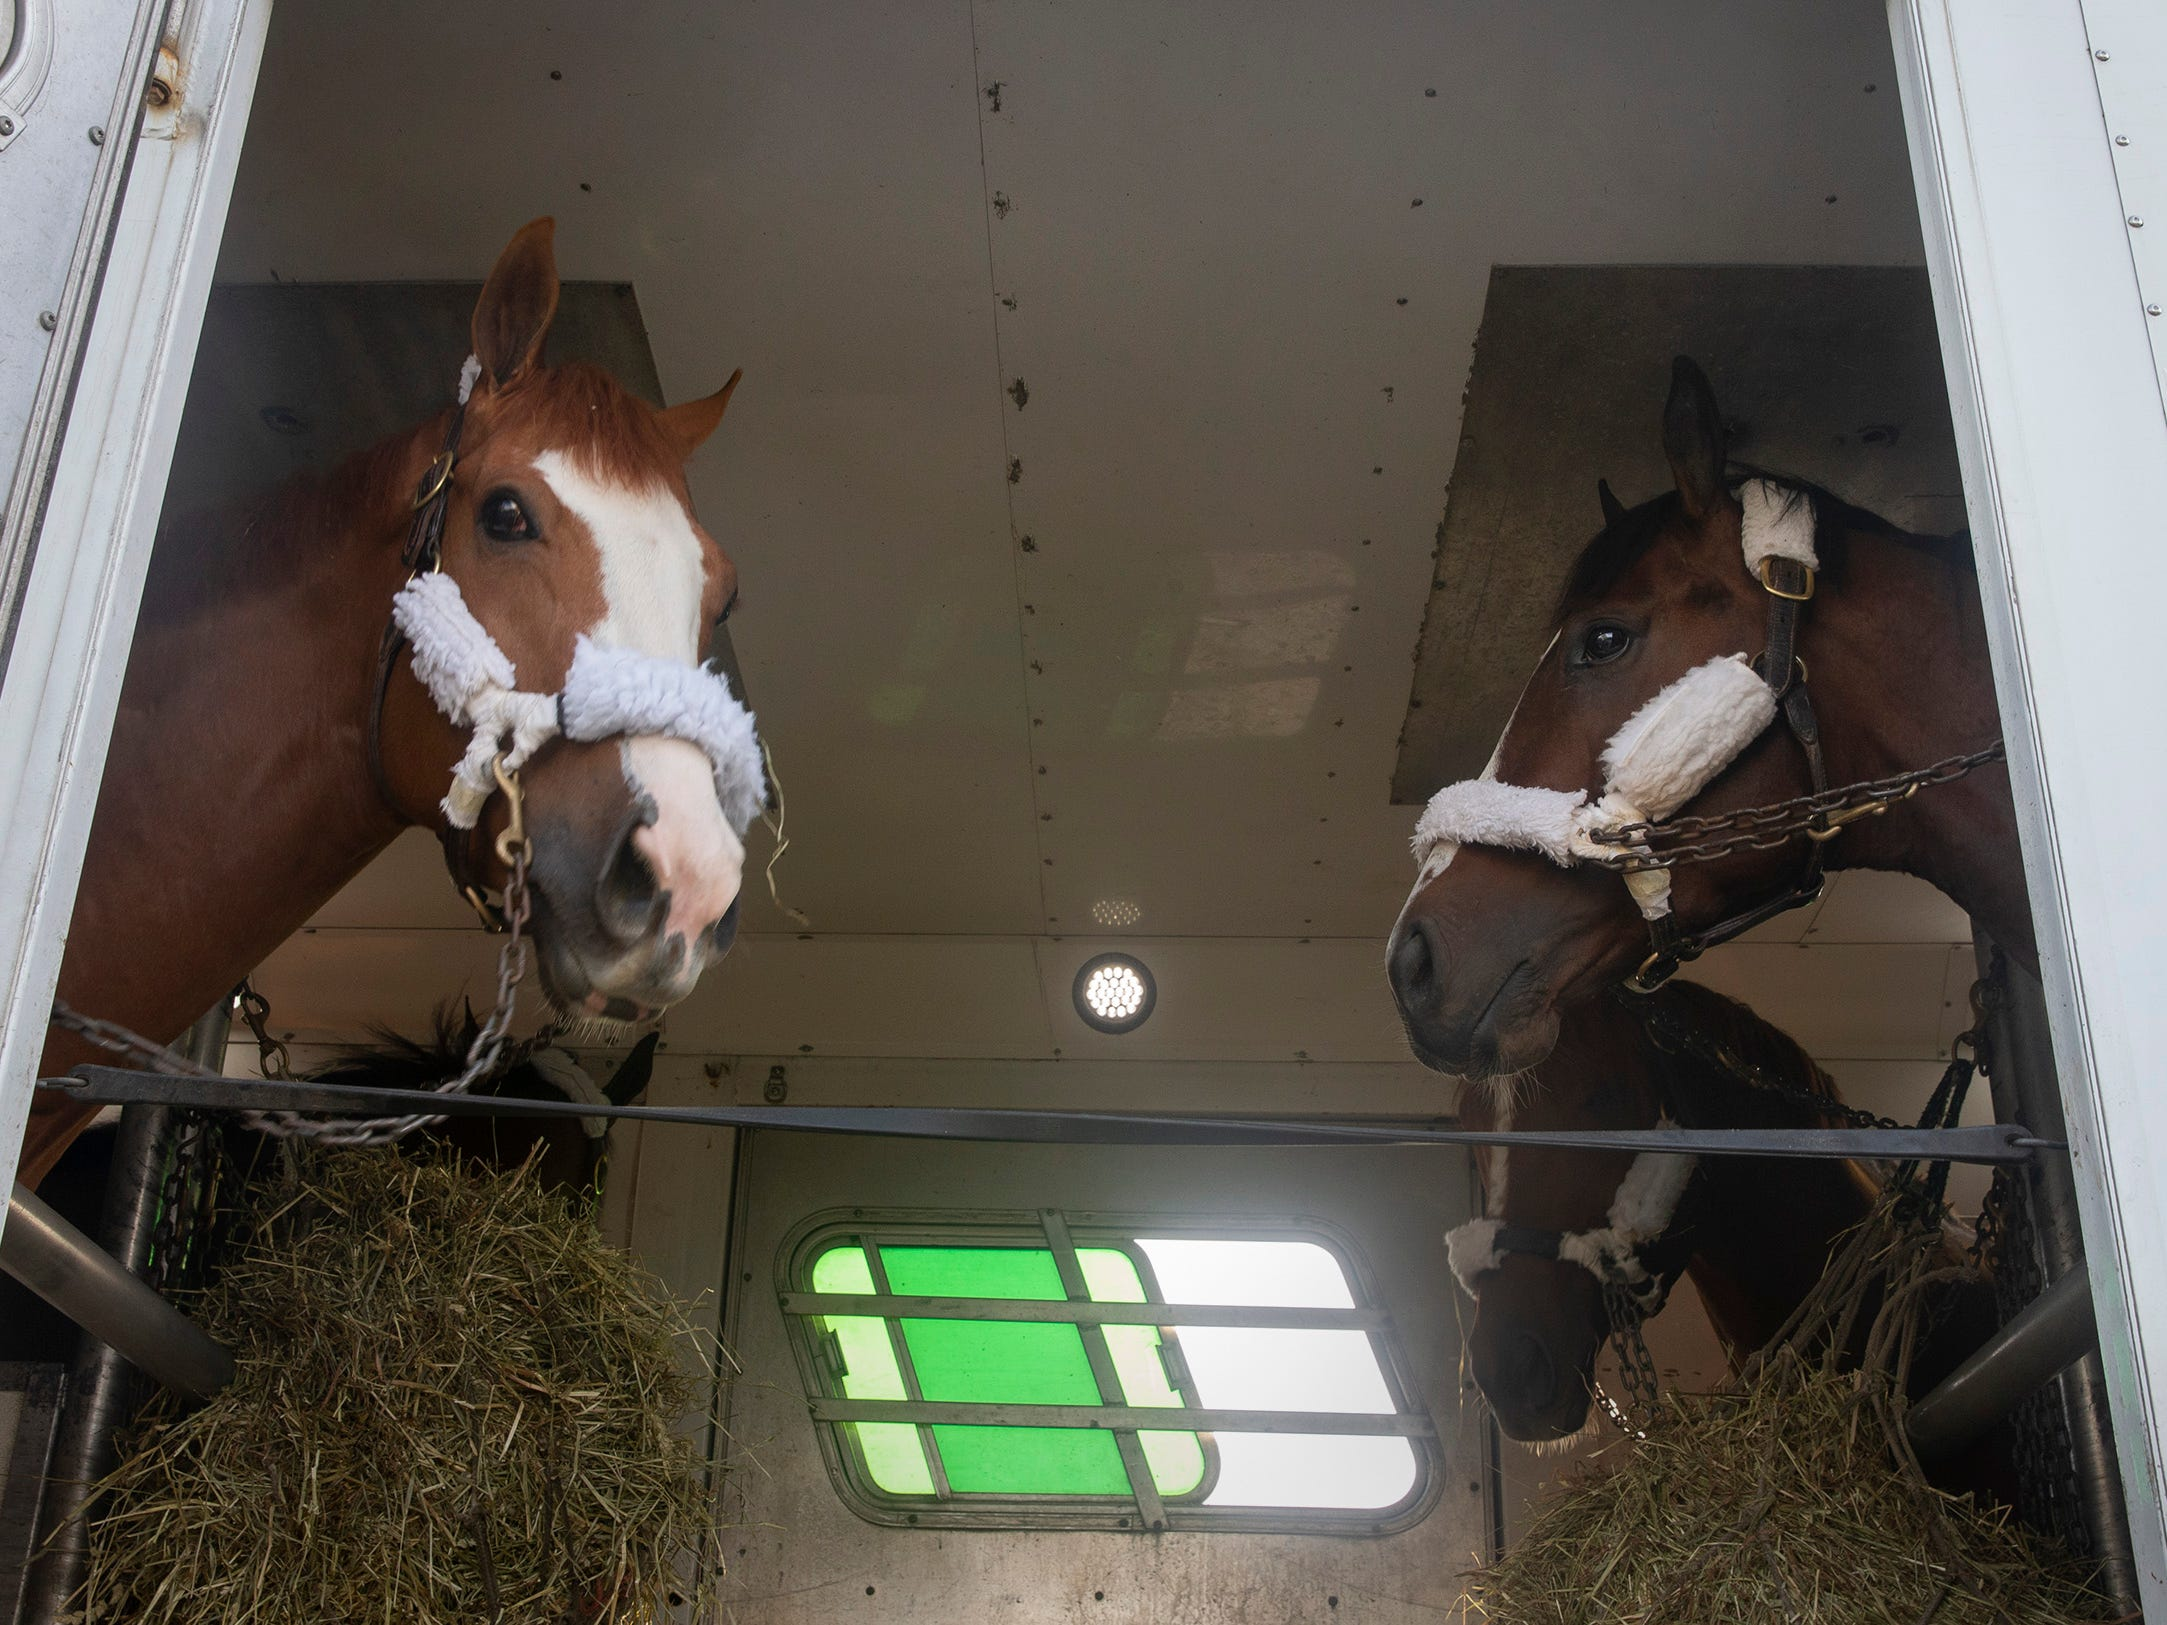 Horses eat and wait patiently to be unloaded in one of several trailers arriving Monday with the horses of trainer Chad Brown. Monmouth Park backstretch comes to life as trainers and horses arrive in preperation for the May 4 opening day.